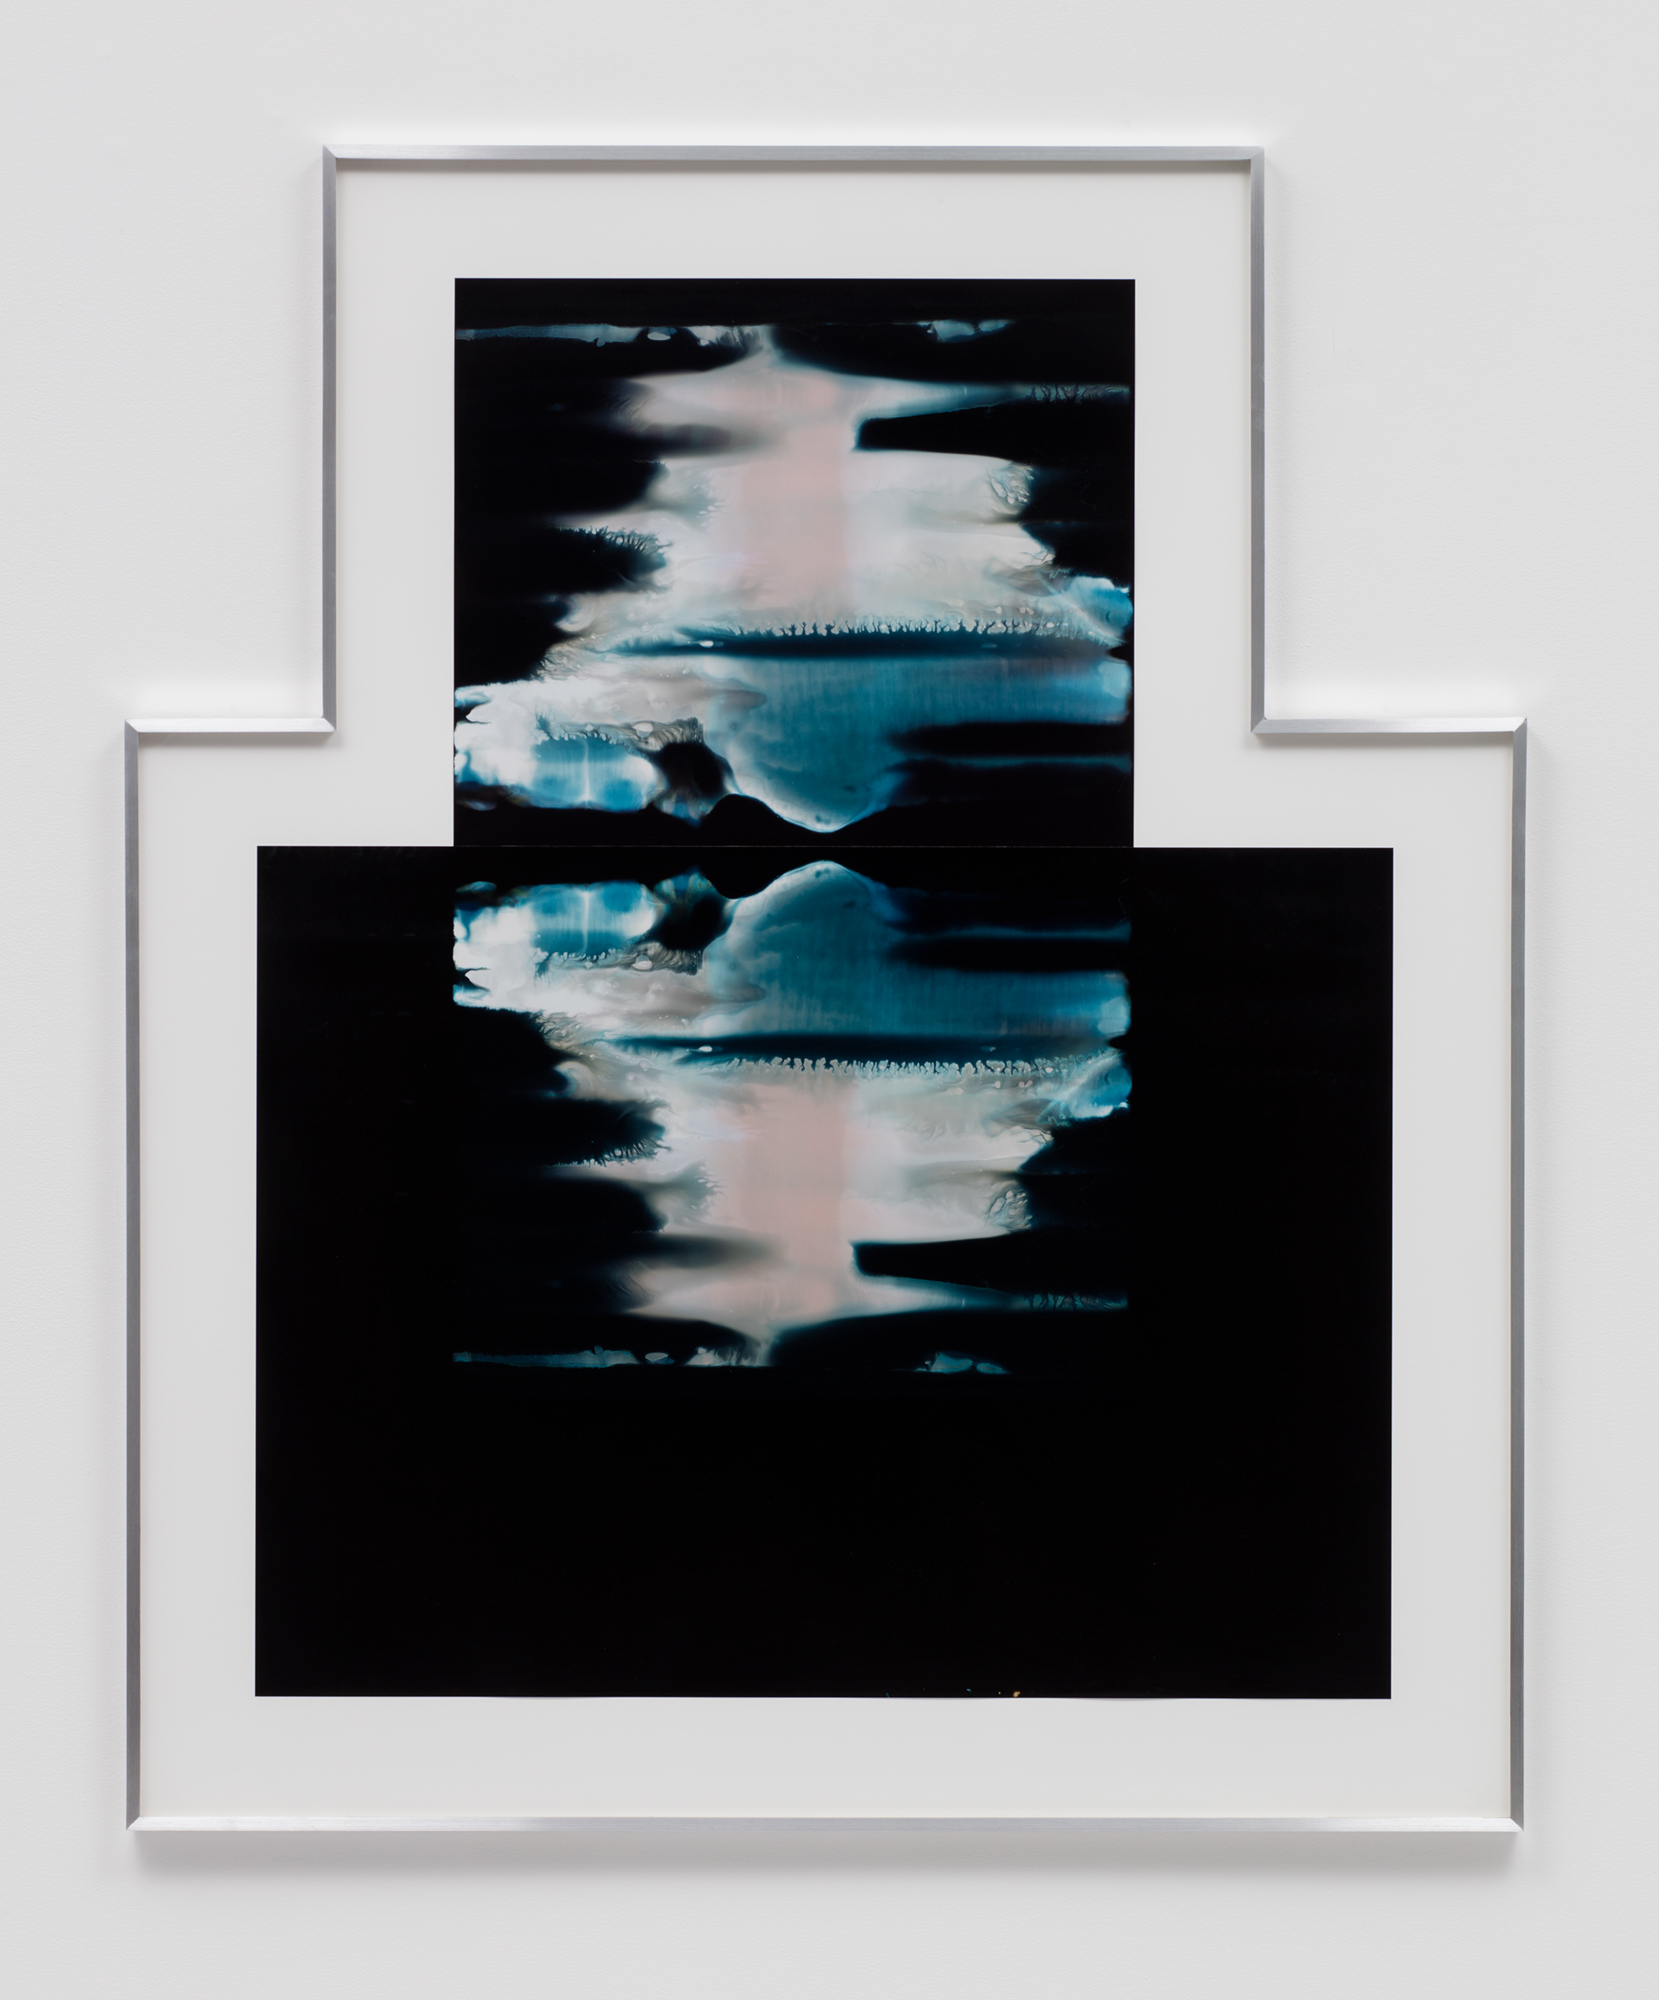 Asymmetrical Inverted RA4 Contact Print / Processor Stall (YMC: Los Angeles, California, January 29, 2018; Fujicolor Crystal Archive Super Type C, Em. No. 159-016 / Fujicolor Crystal Archive Super Type II, Em. No. 859809B217; Kodak Ektacolor RA Bleach-Fix and Replenisher; Kreonite KM IV 5225 RA4 Color Processor, Ser. No. 00092174; 02718)   2018  Color photographic paper  59 1/8 x 49 inches   Equivalents, 2018